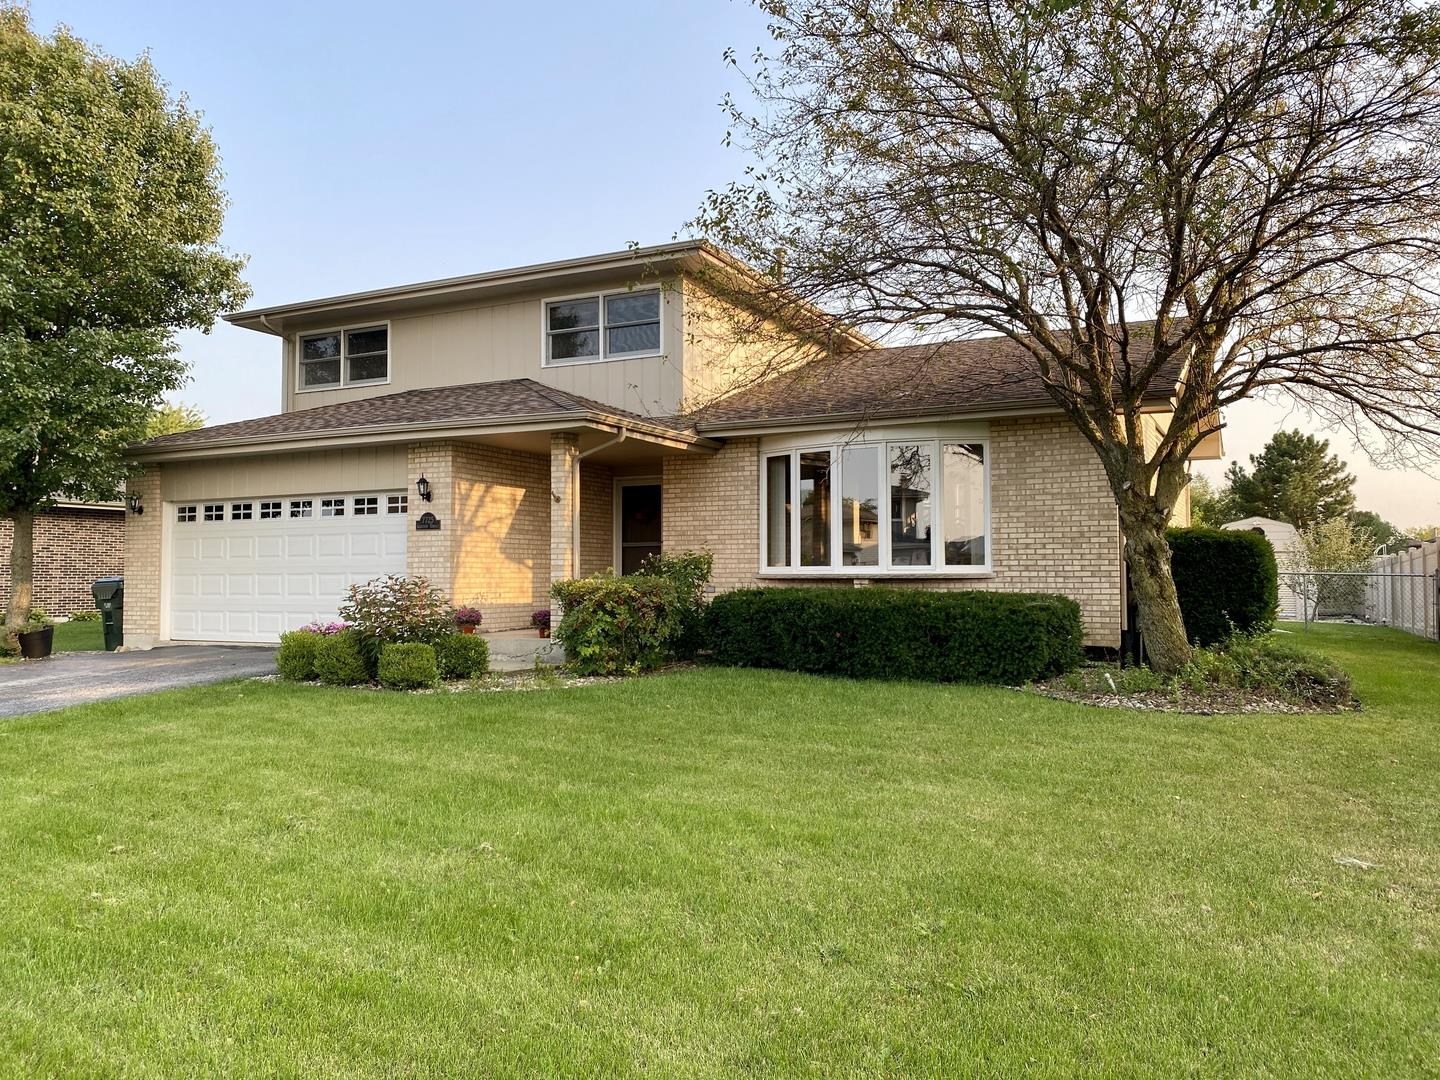 7725 W Lakeview Terrace, Frankfort, IL 60423 - #: 10879276